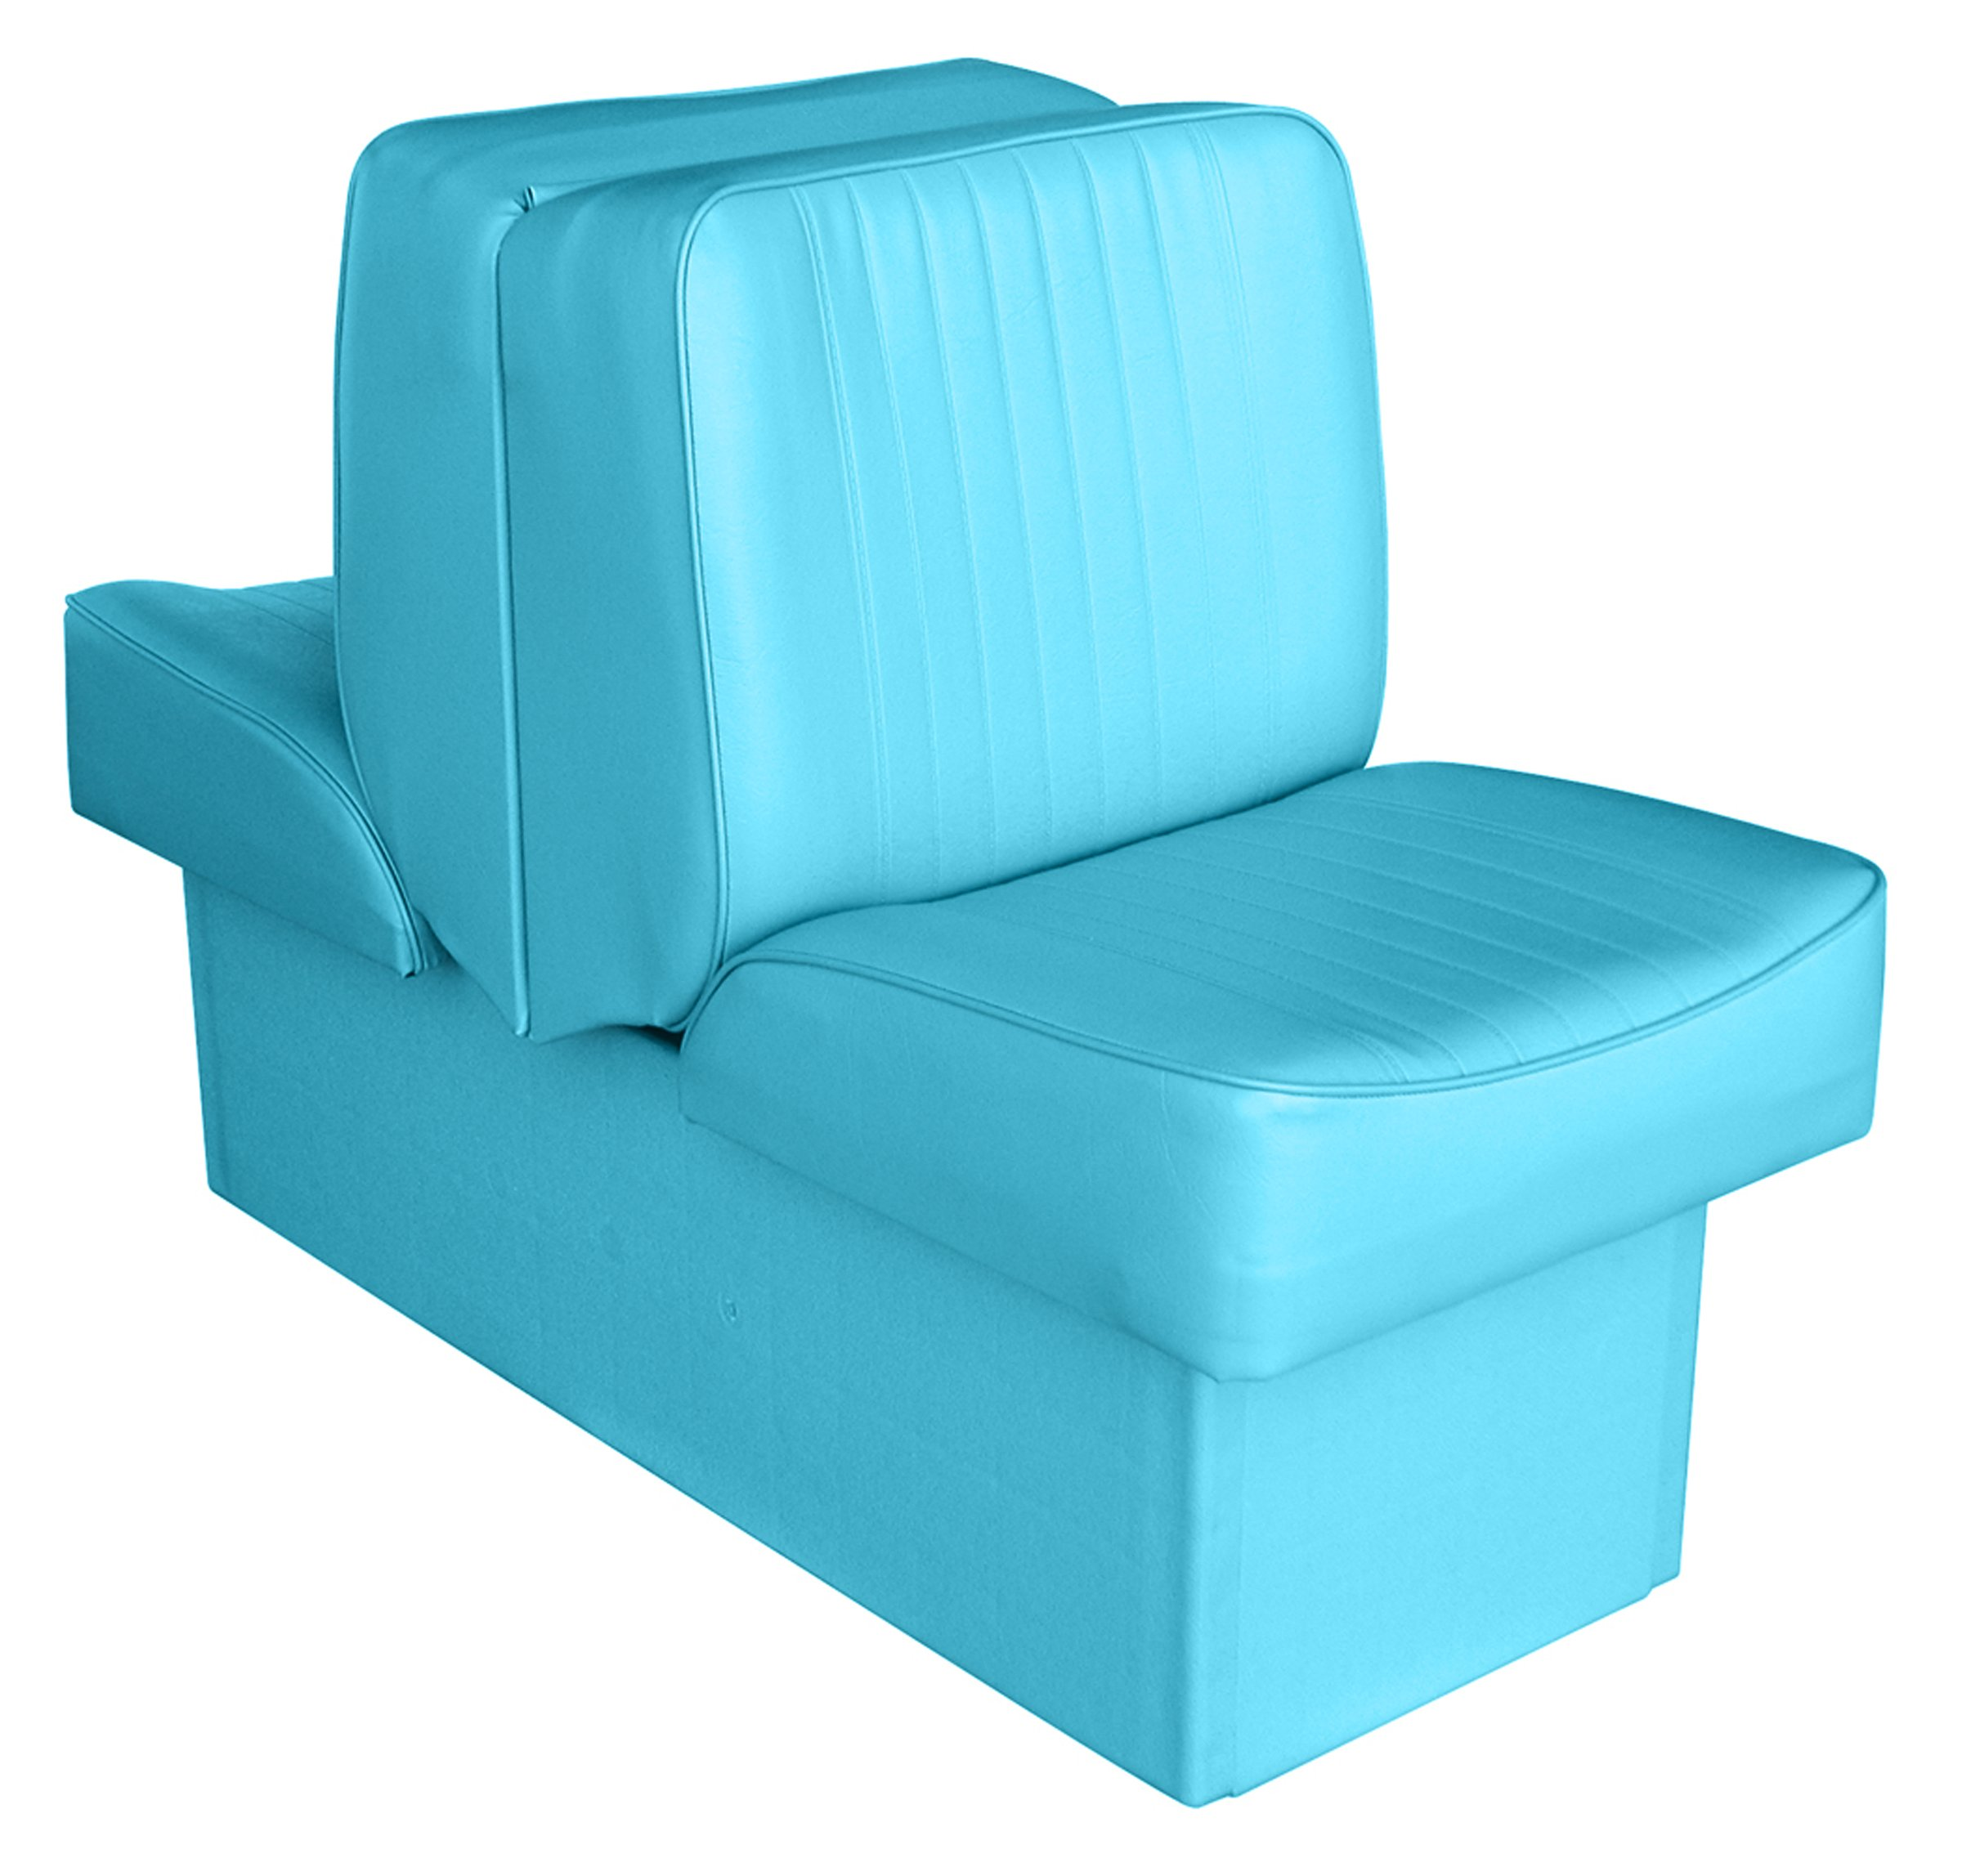 Wise 8WD707P-1-718 Deluxe Lounge Seat (Light Blue)